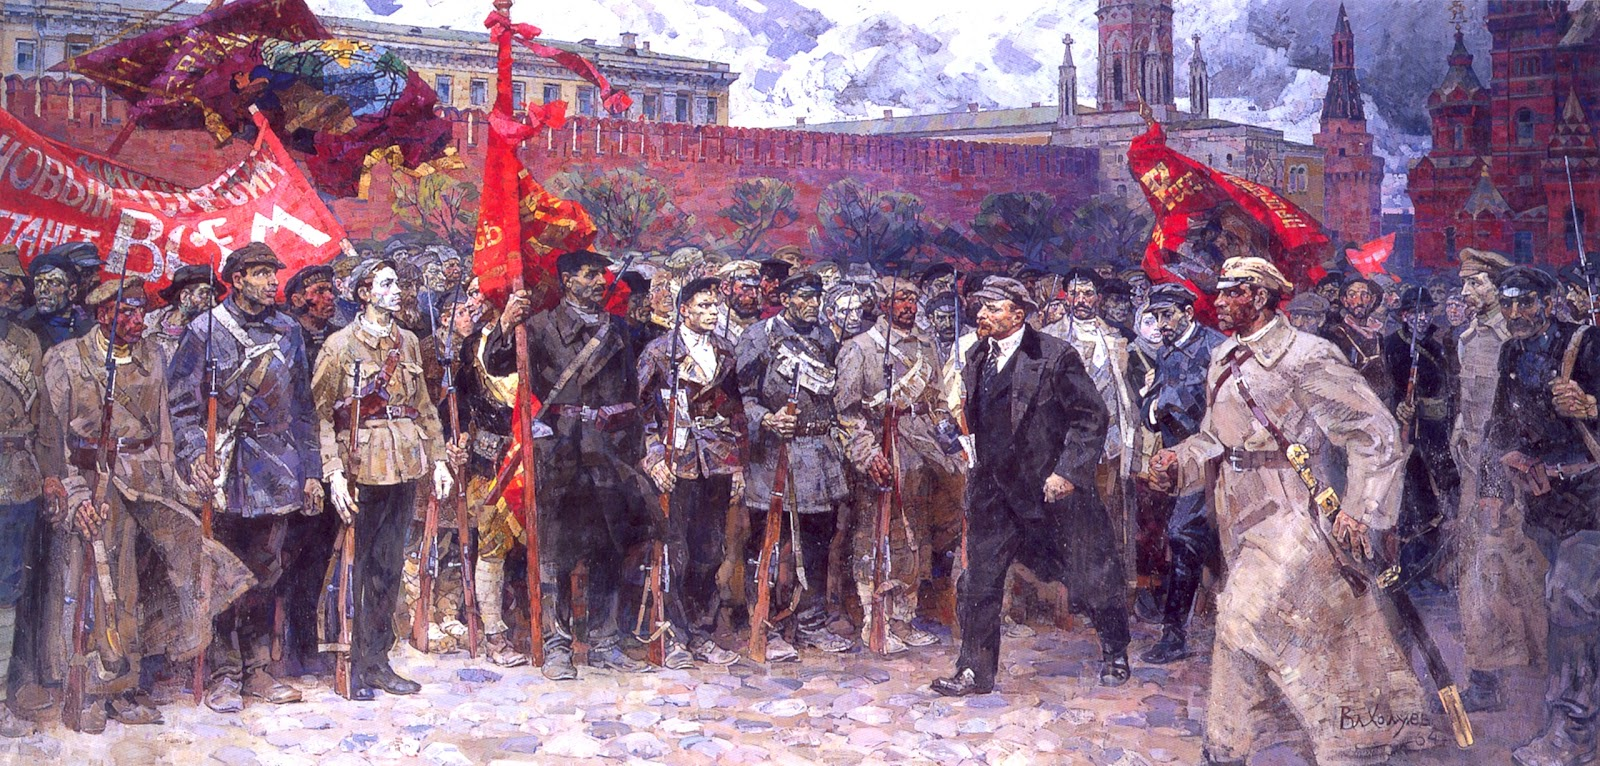 why did the russian revolution occur The russian revolution of 1917 occurred for a number of different reasons, all of which are strongly tied up with the romanov family for one, the people of the russian empire felt exploited due to a series of political, social and economic grievances.